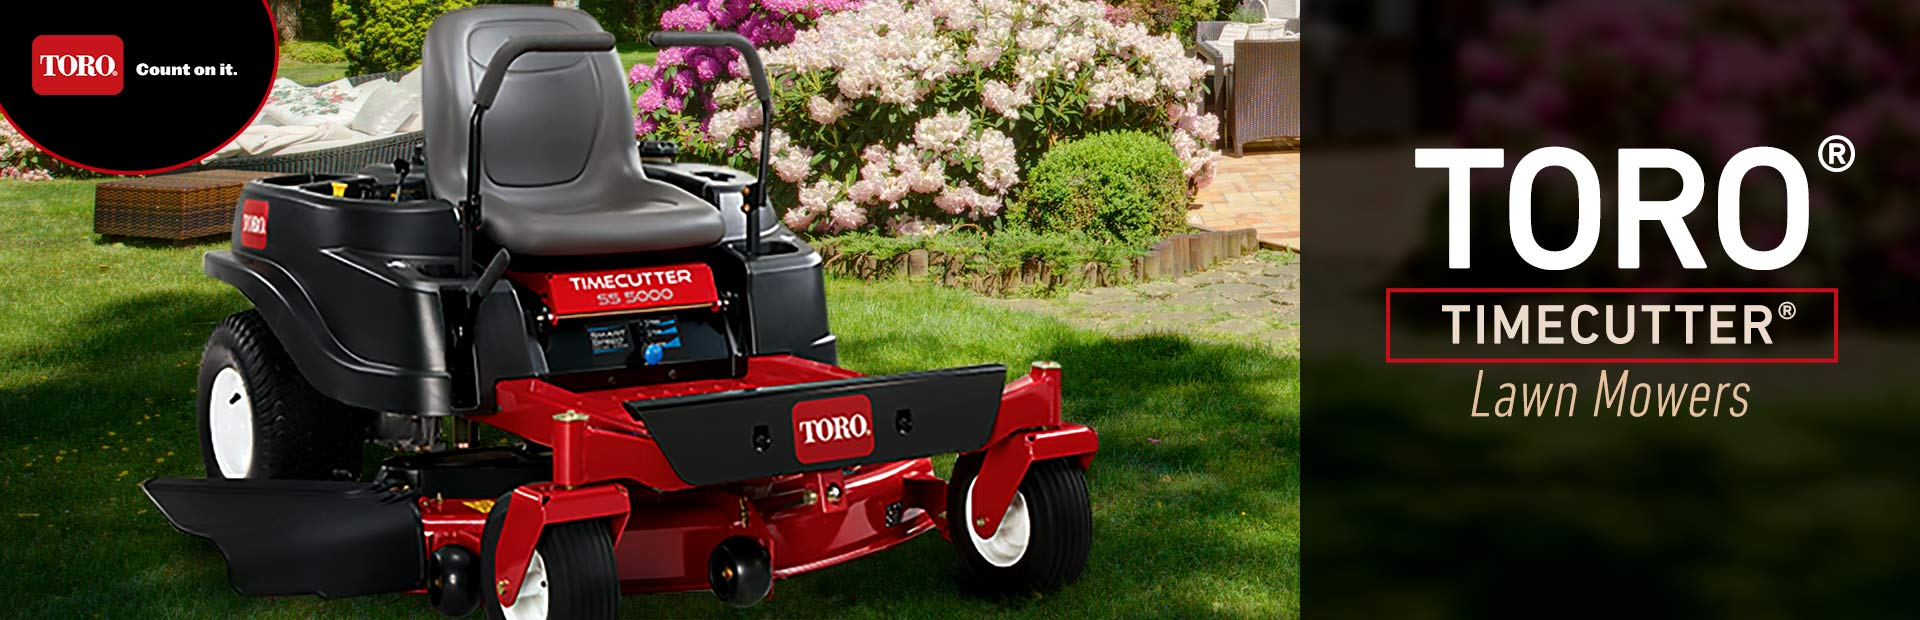 Toro TimeCutter® Lawn Mowers: Click here to view the models.